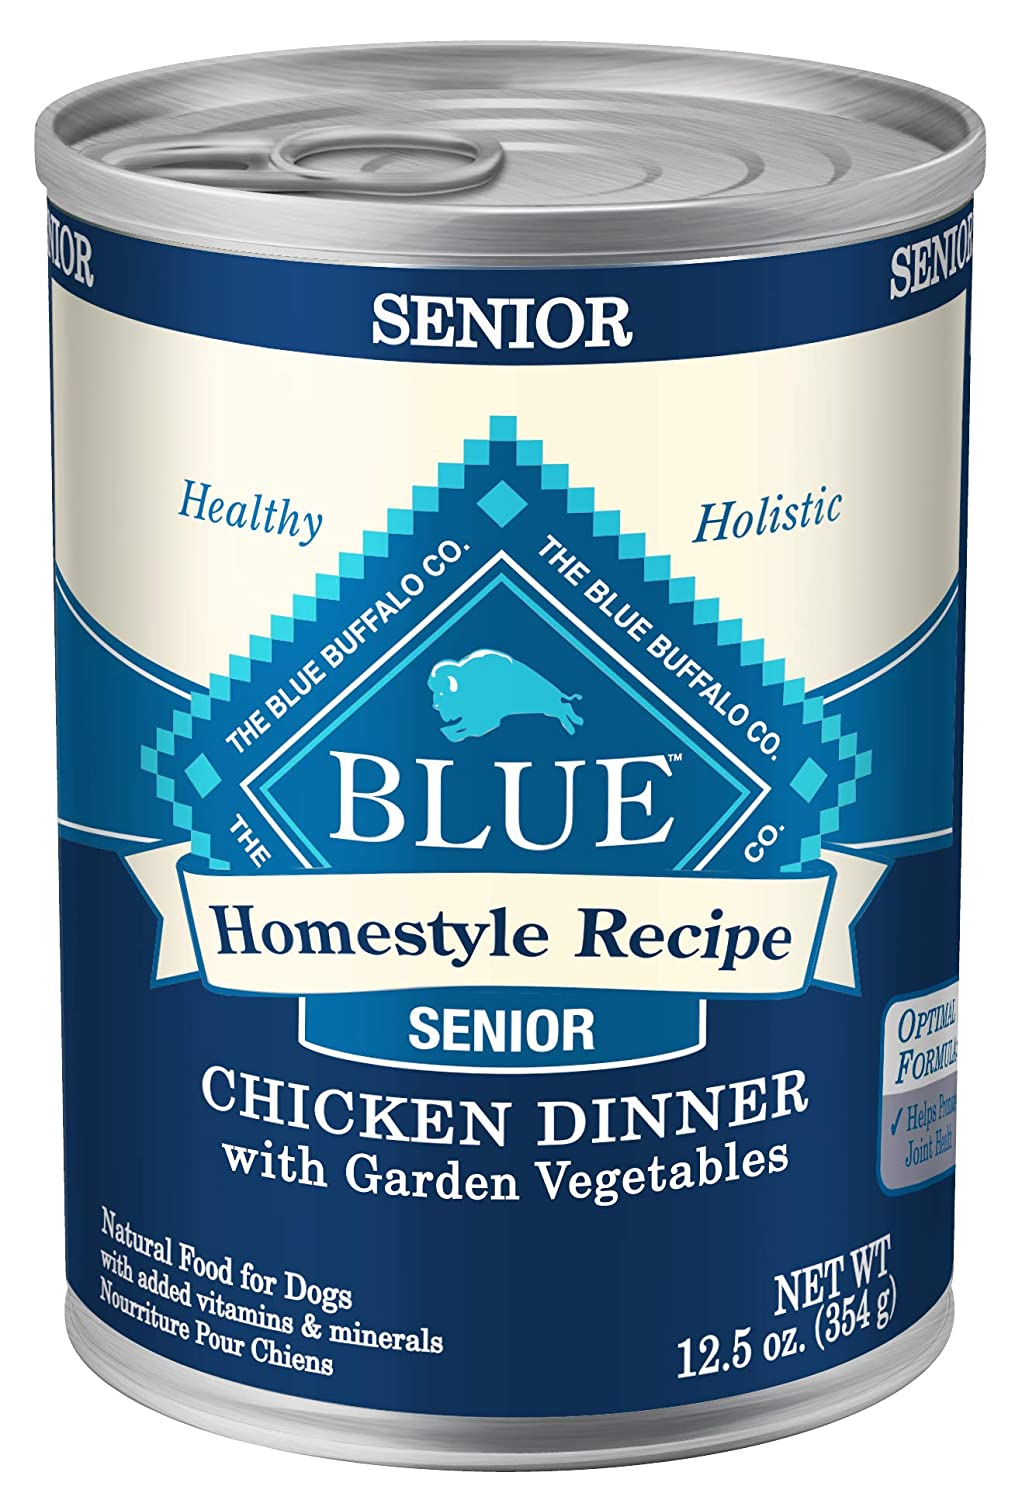 2. Blue Buffalo Homestyle Recipe Senior Chicken Dinner with Garden Vegetables Canned Food